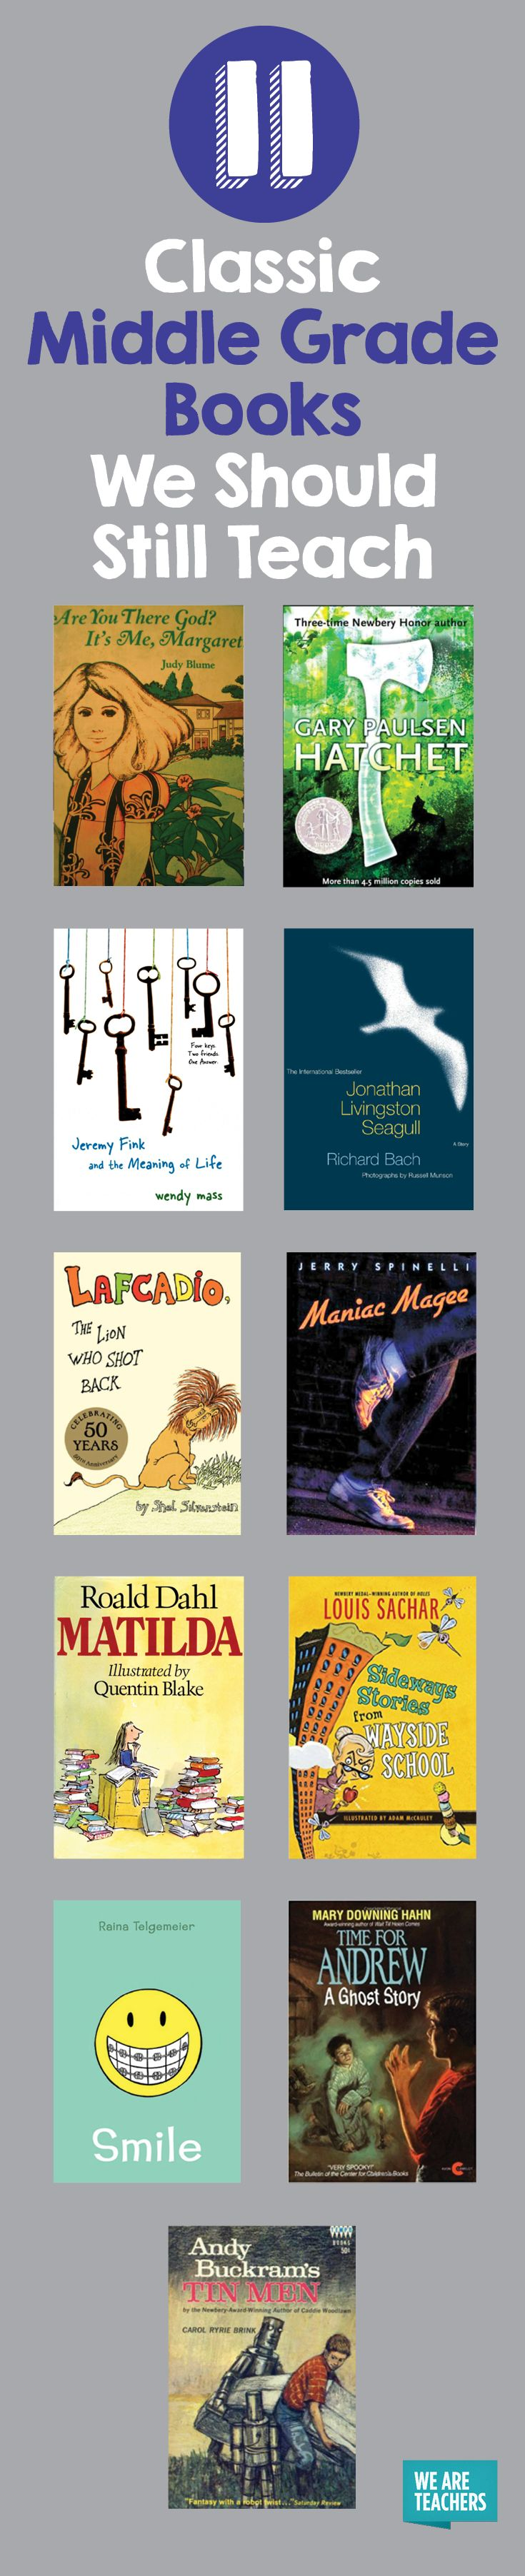 That new YA franchise is all the rage, but these classic middle grade books will never go out of style. Keep teaching (and reading) these favorites.